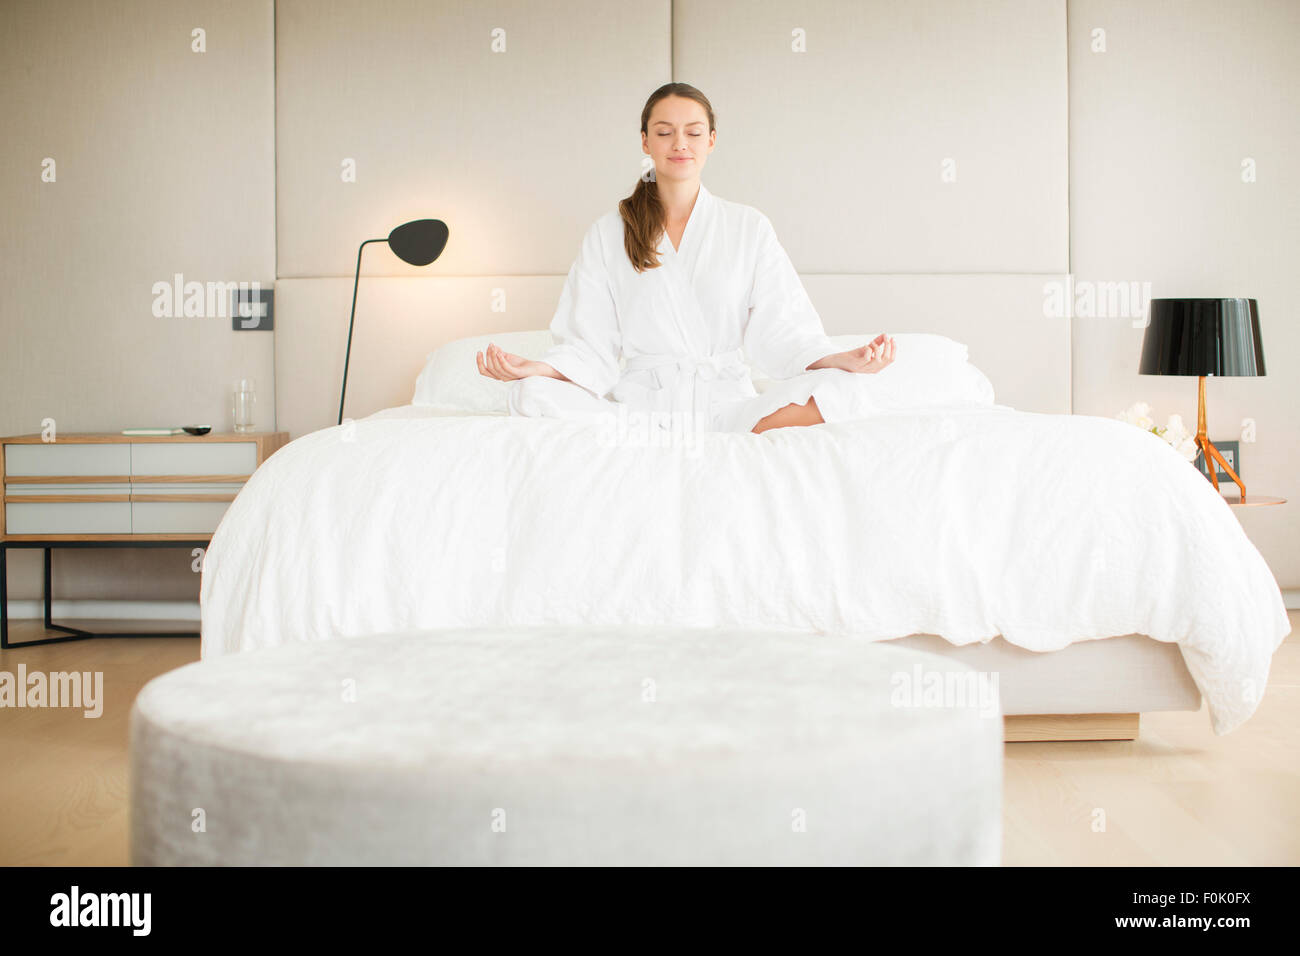 Serene woman in bathrobe meditating in lotus position on bed - Stock Image